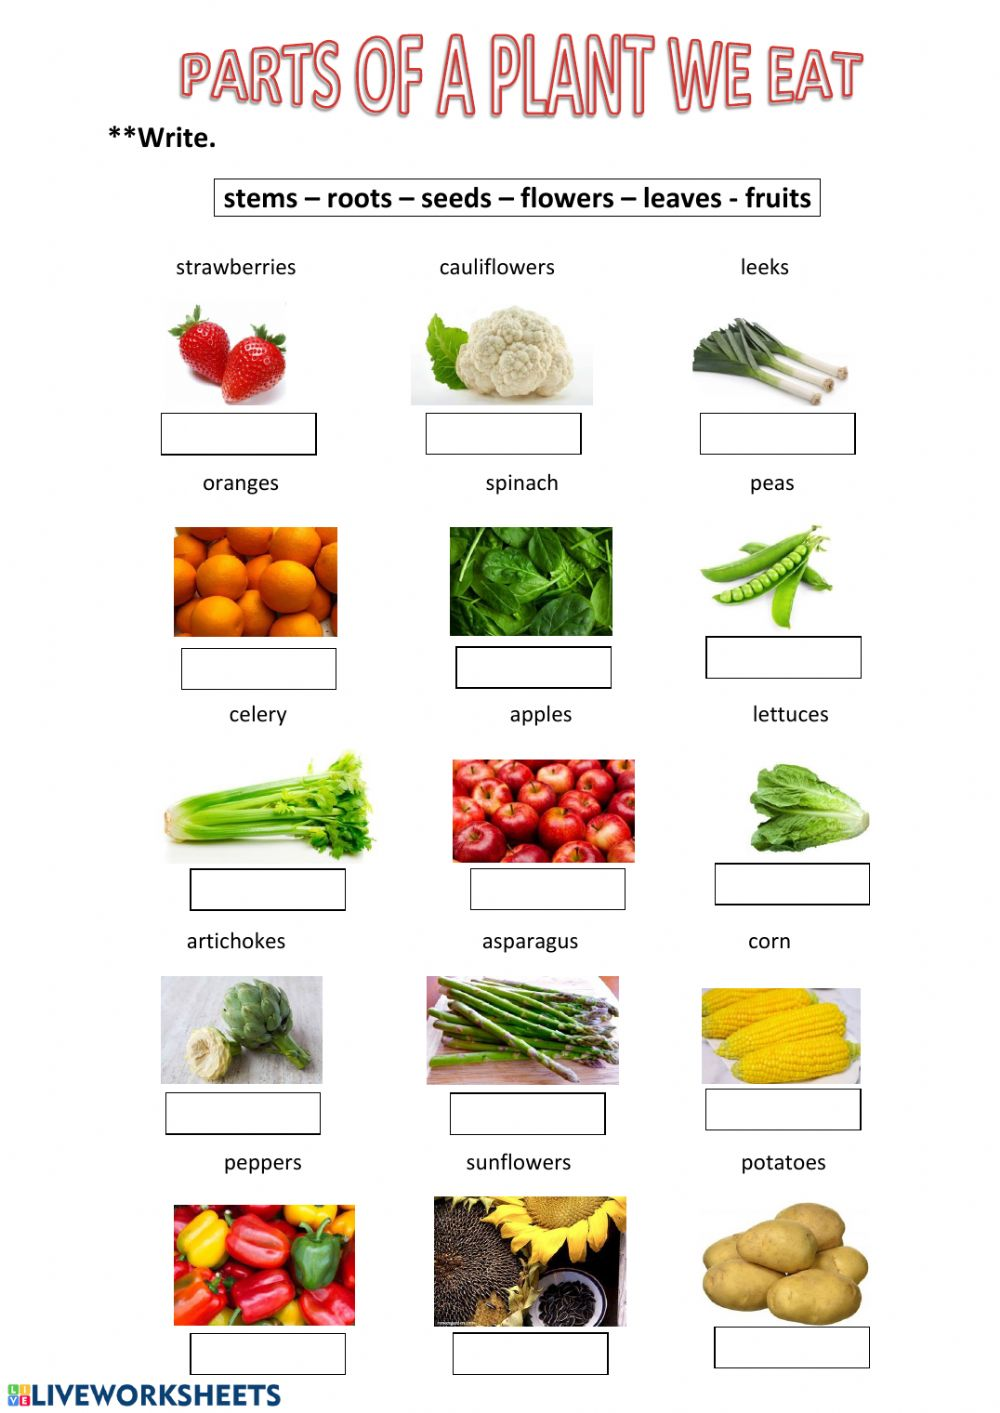 Parts Of A Plant We Eat Worksheet